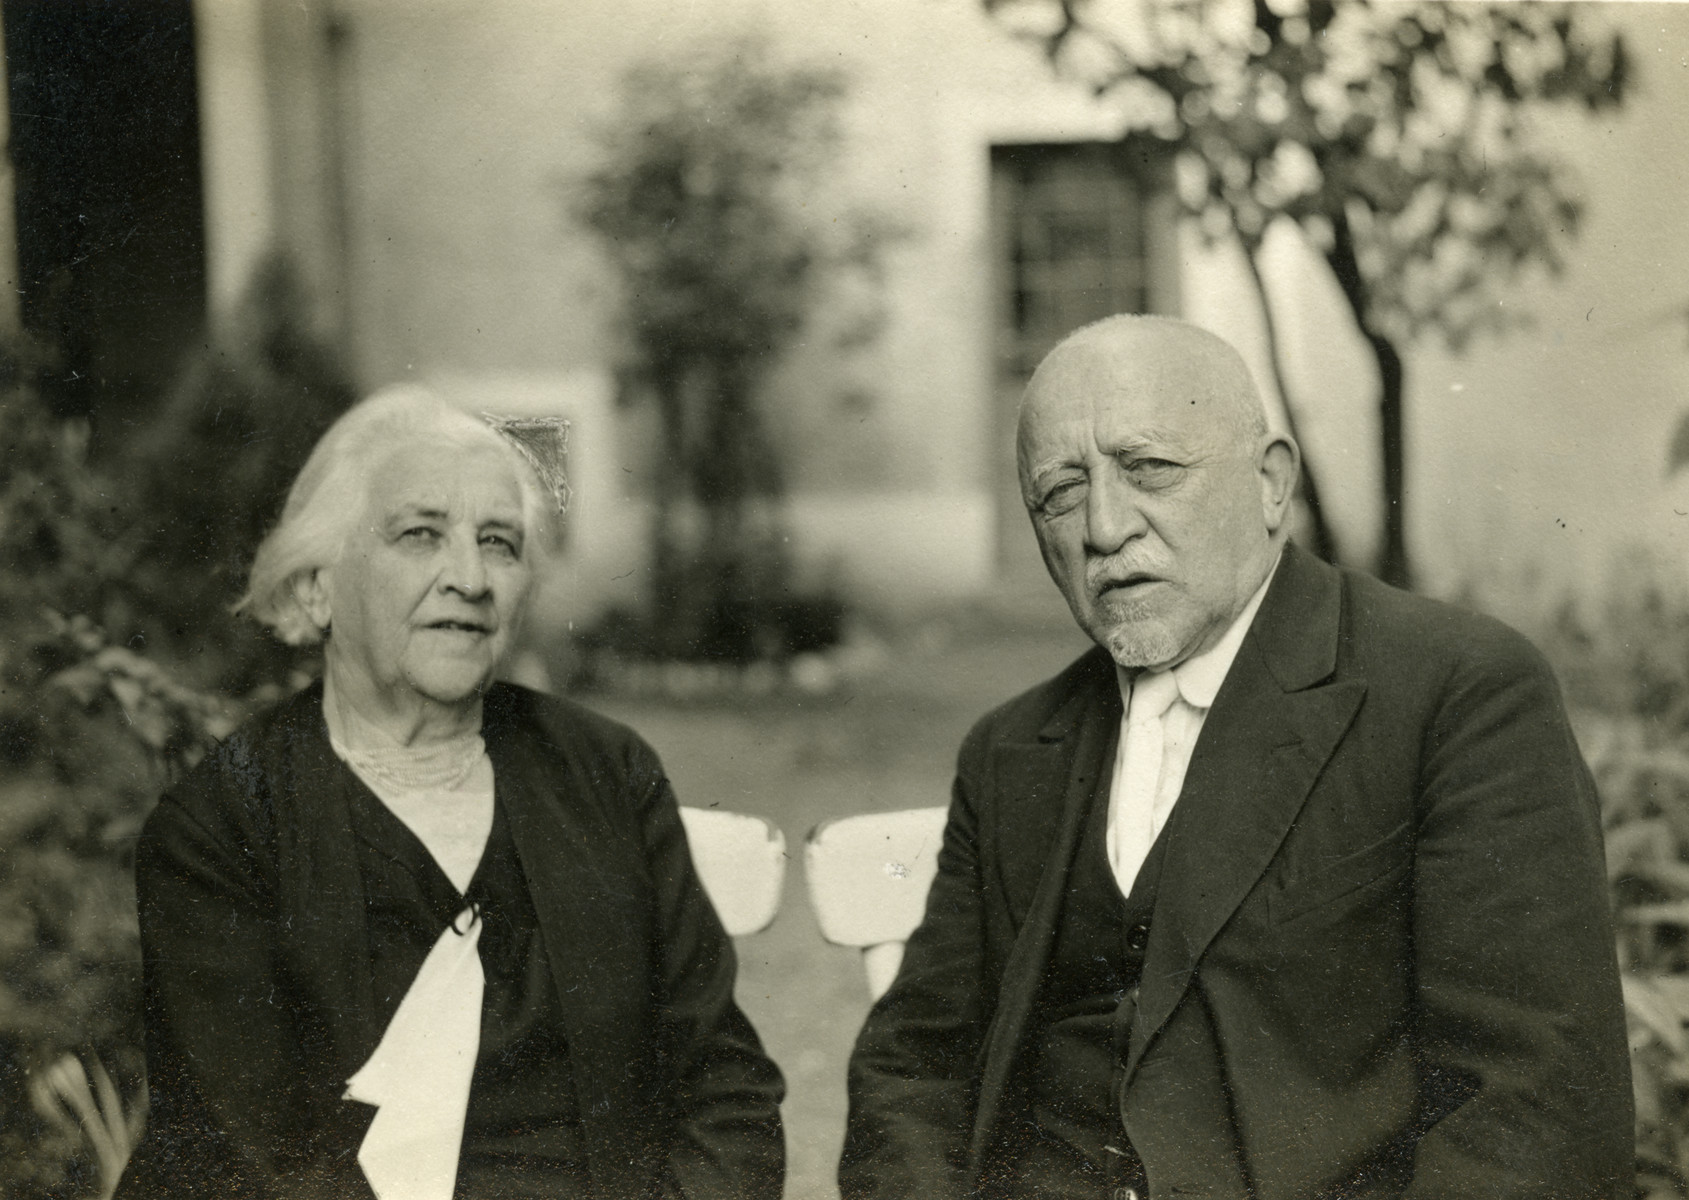 Close-up portrait of Benedikt Baruch Duschnitz (b.1854) and Cecilia  Zierl (nee Meisel) Duschnitz, the grandparents of the donor.